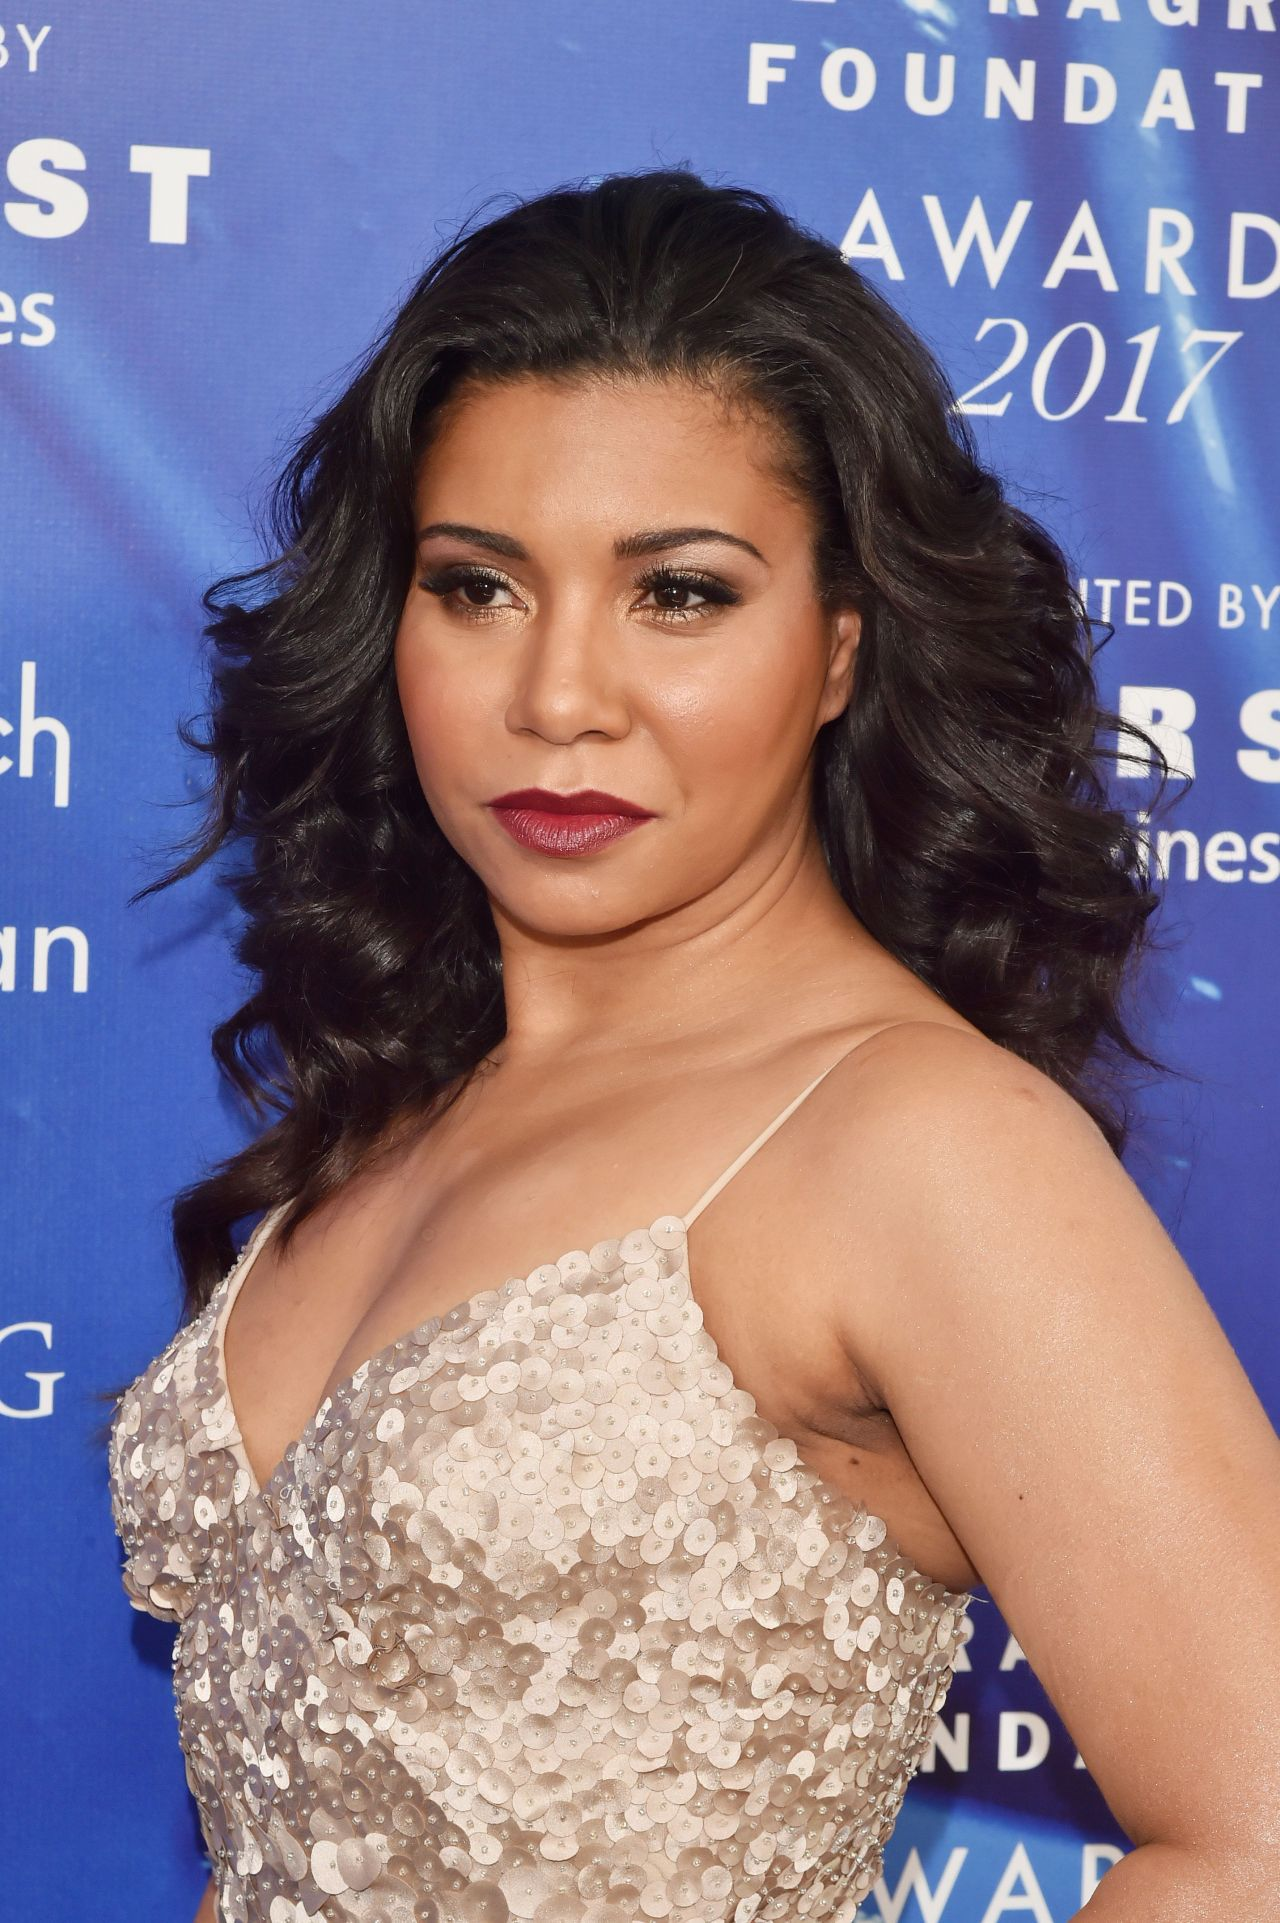 Tits Jessica Pimentel naked photo 2017